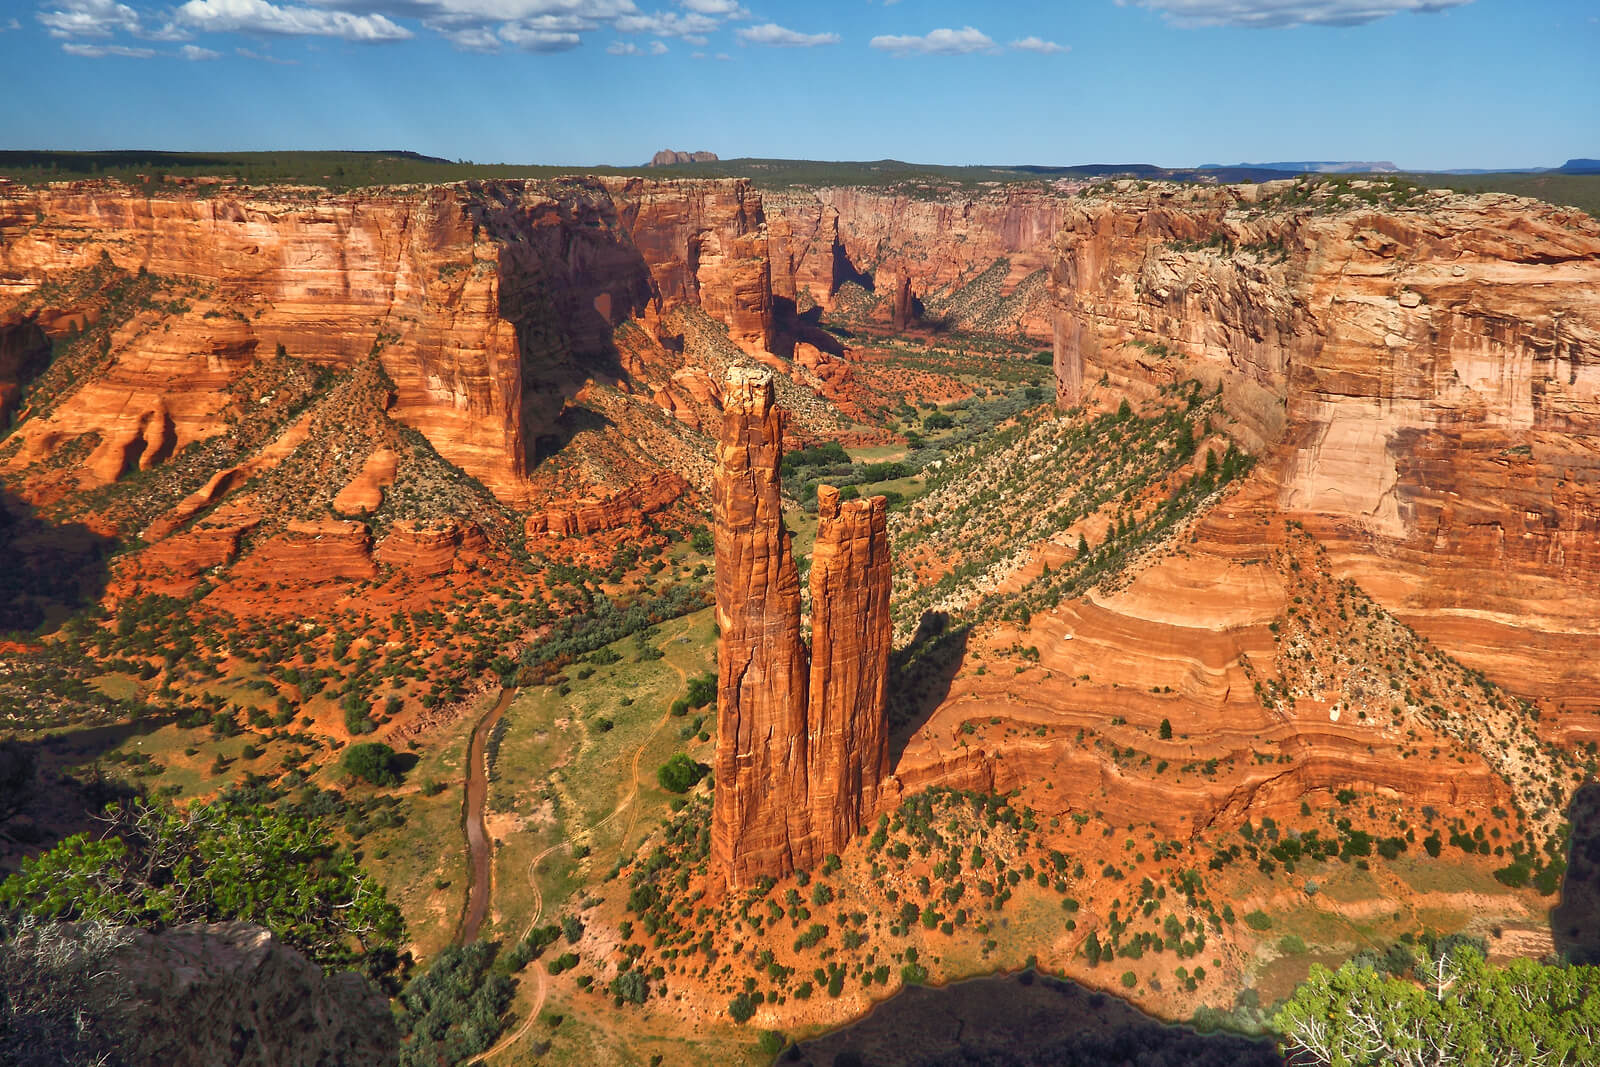 Aerial shot of Canyon de Chelly. Looking down on Spider Rock.  Flickr User RH&XL